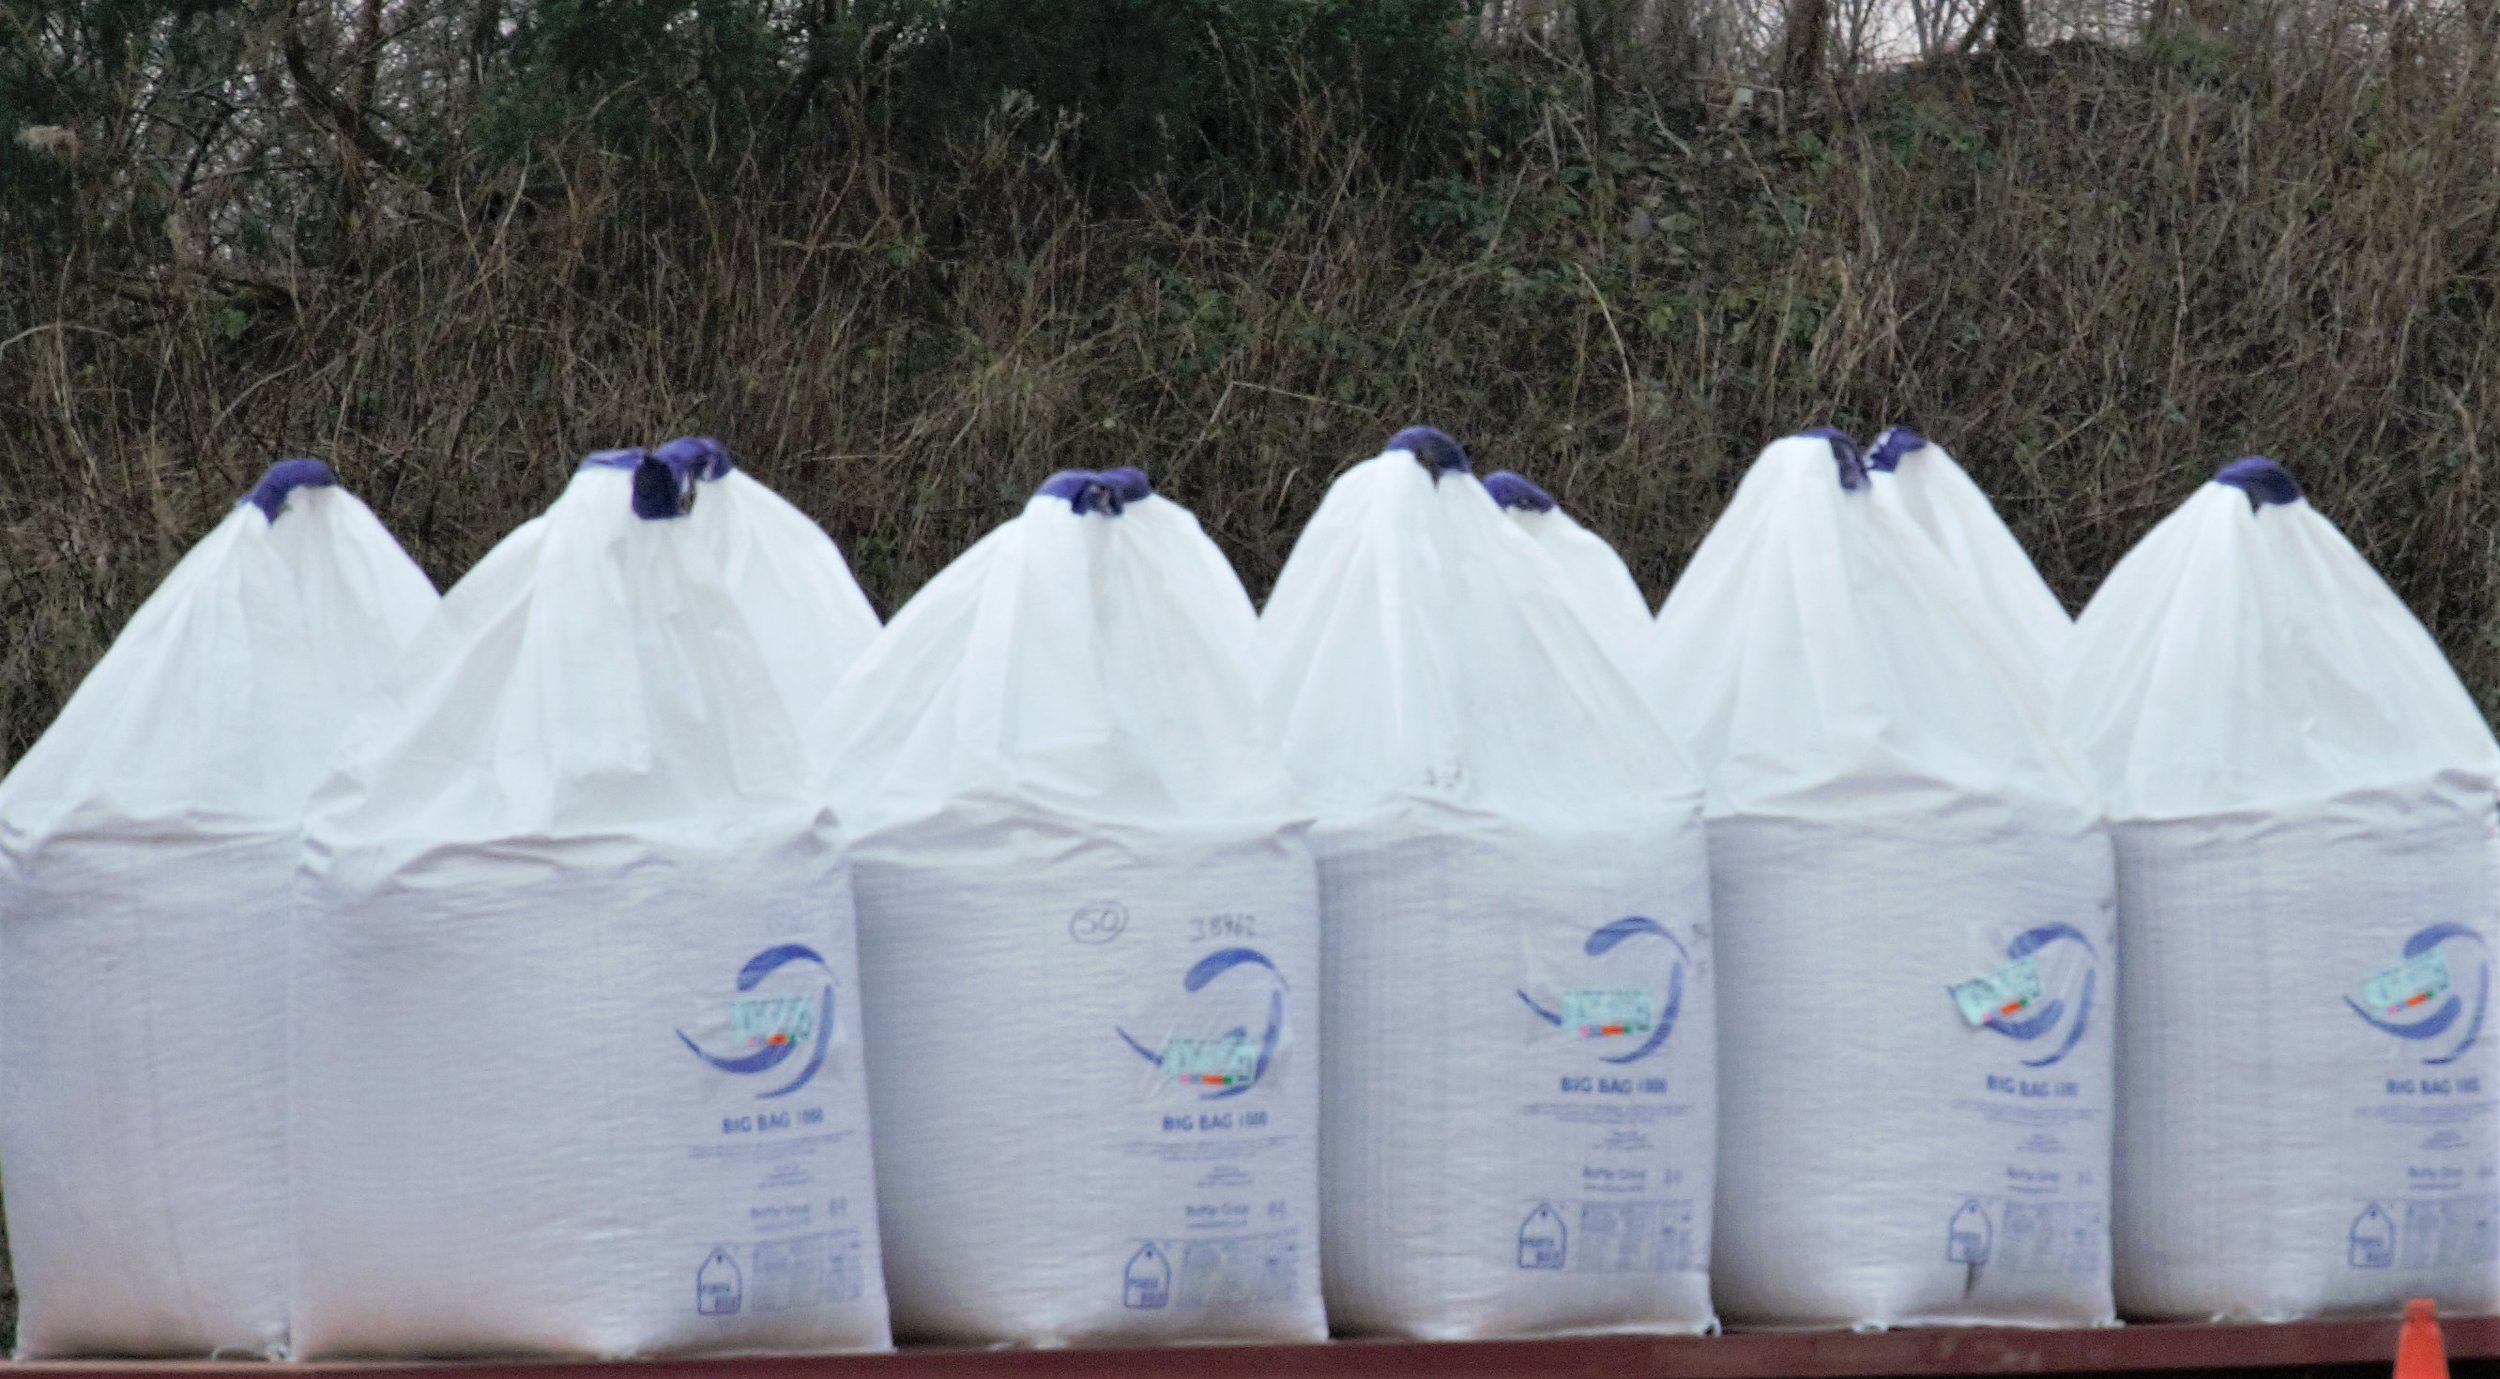 Salmon feed bags ready for transport to cages